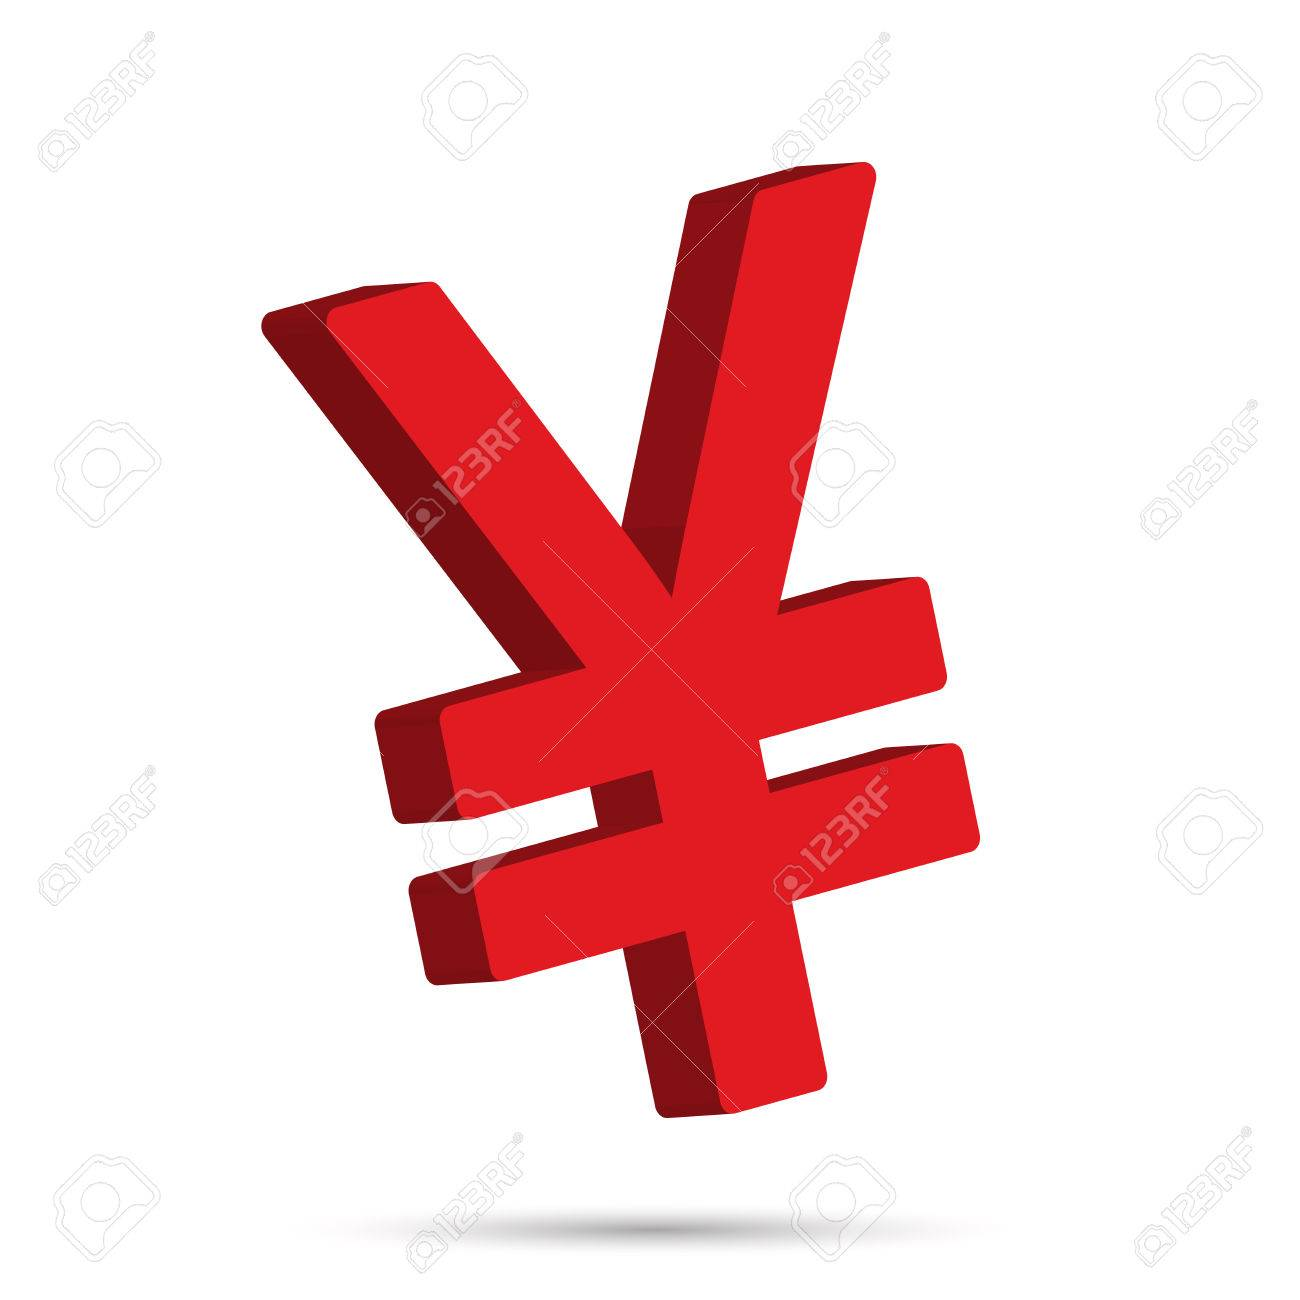 Japanese yen or chinese yuan currency symbol royalty free cliparts japanese yen or chinese yuan currency symbol stock vector 62127842 buycottarizona Gallery